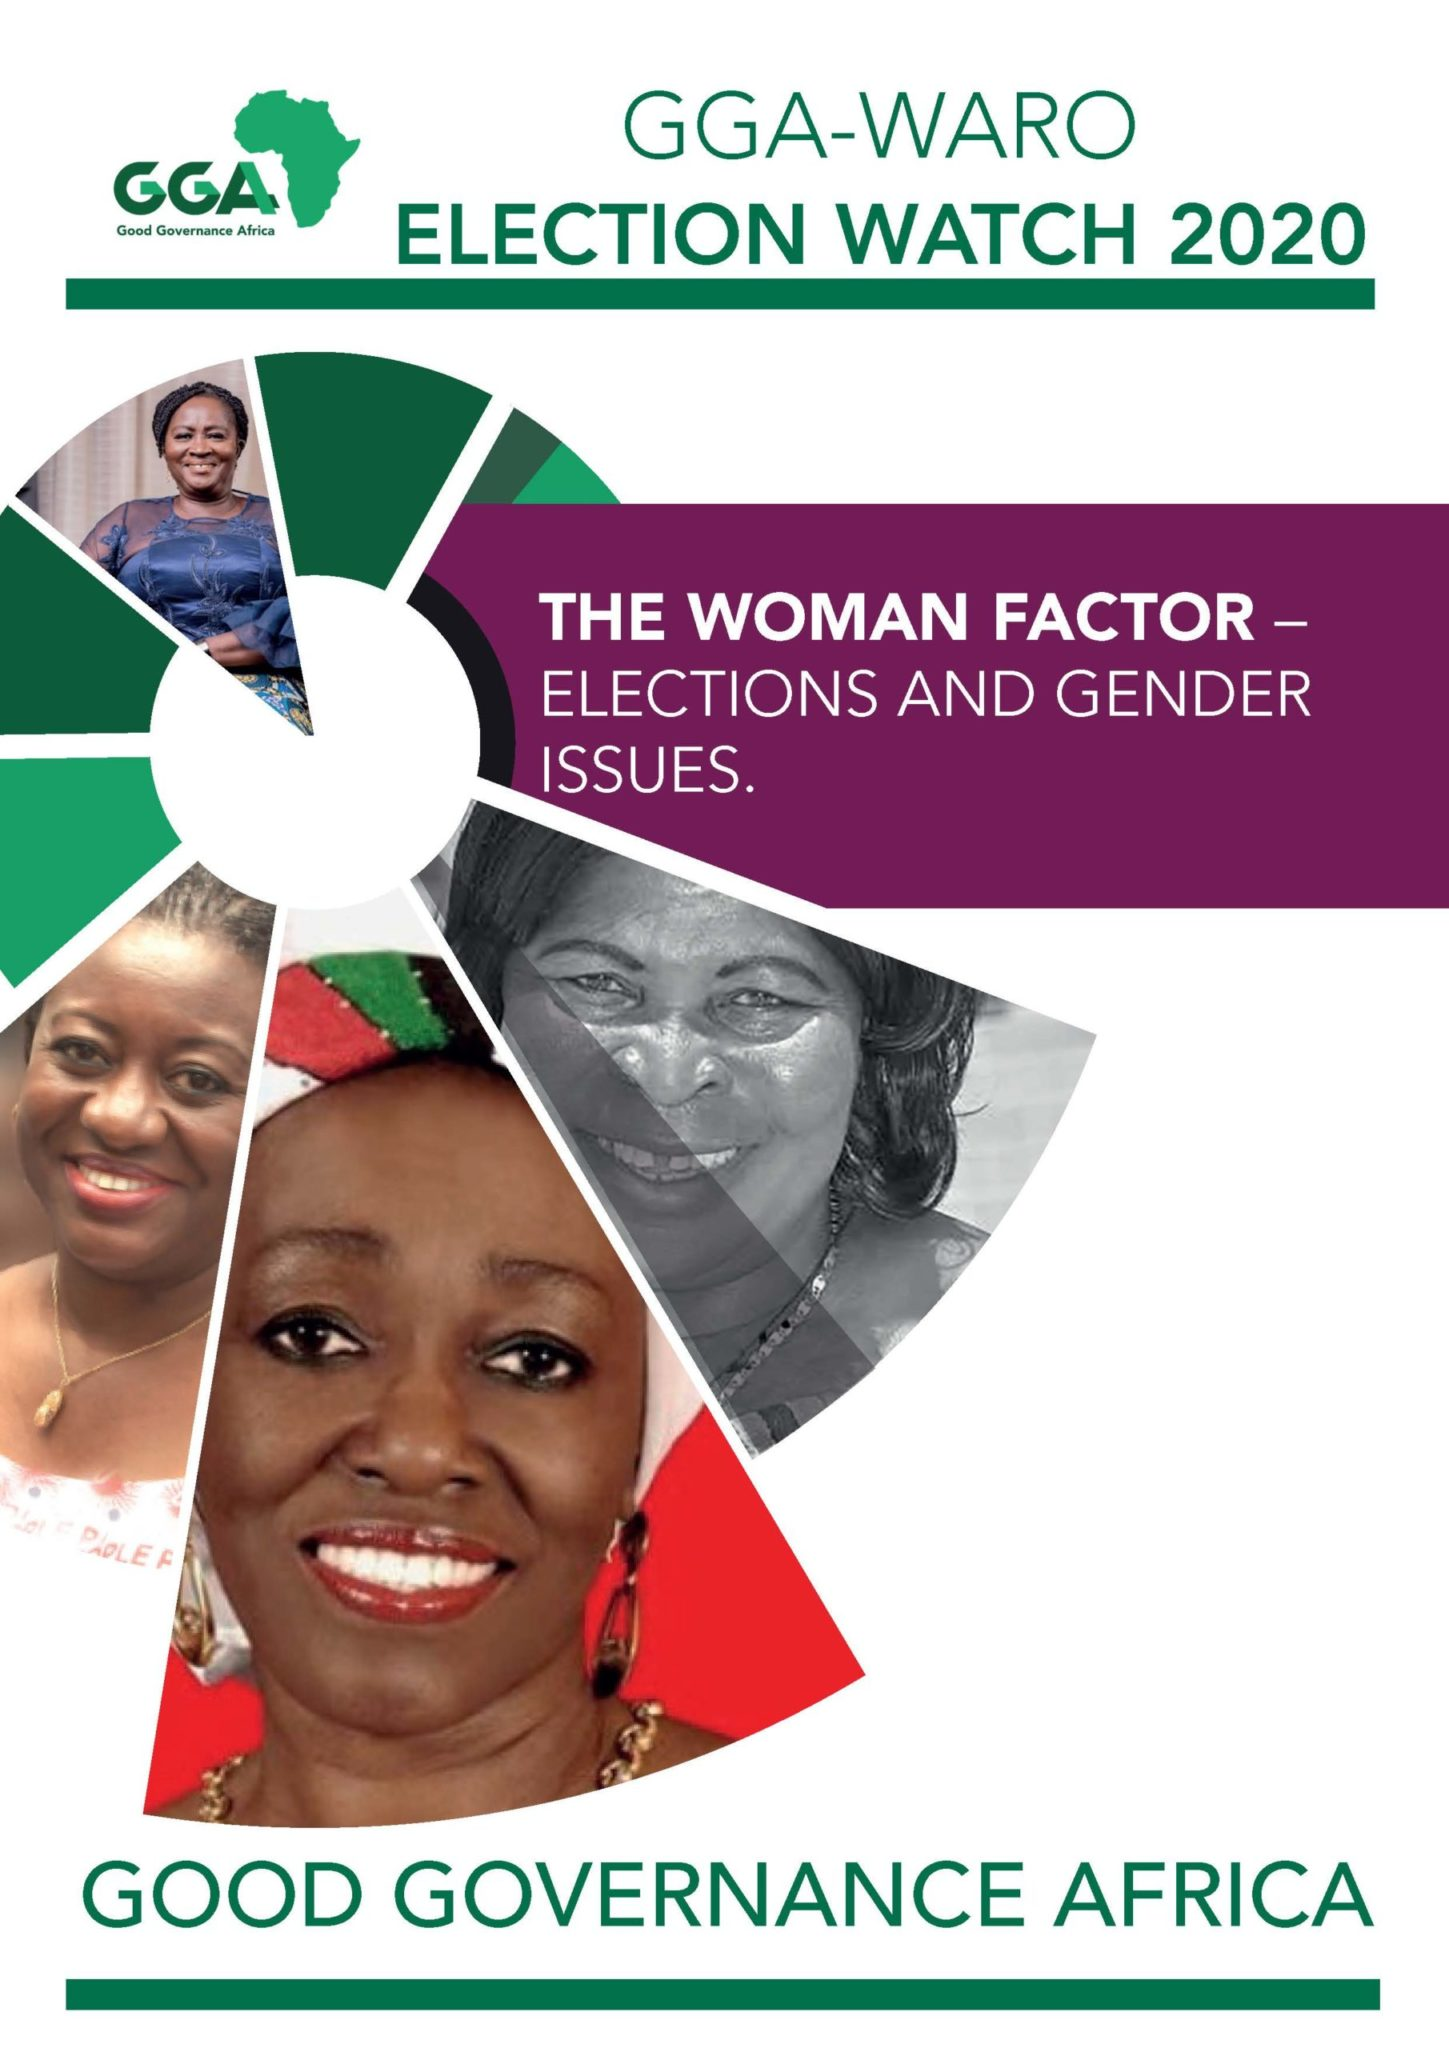 The Woman Factor – elections and gender issues